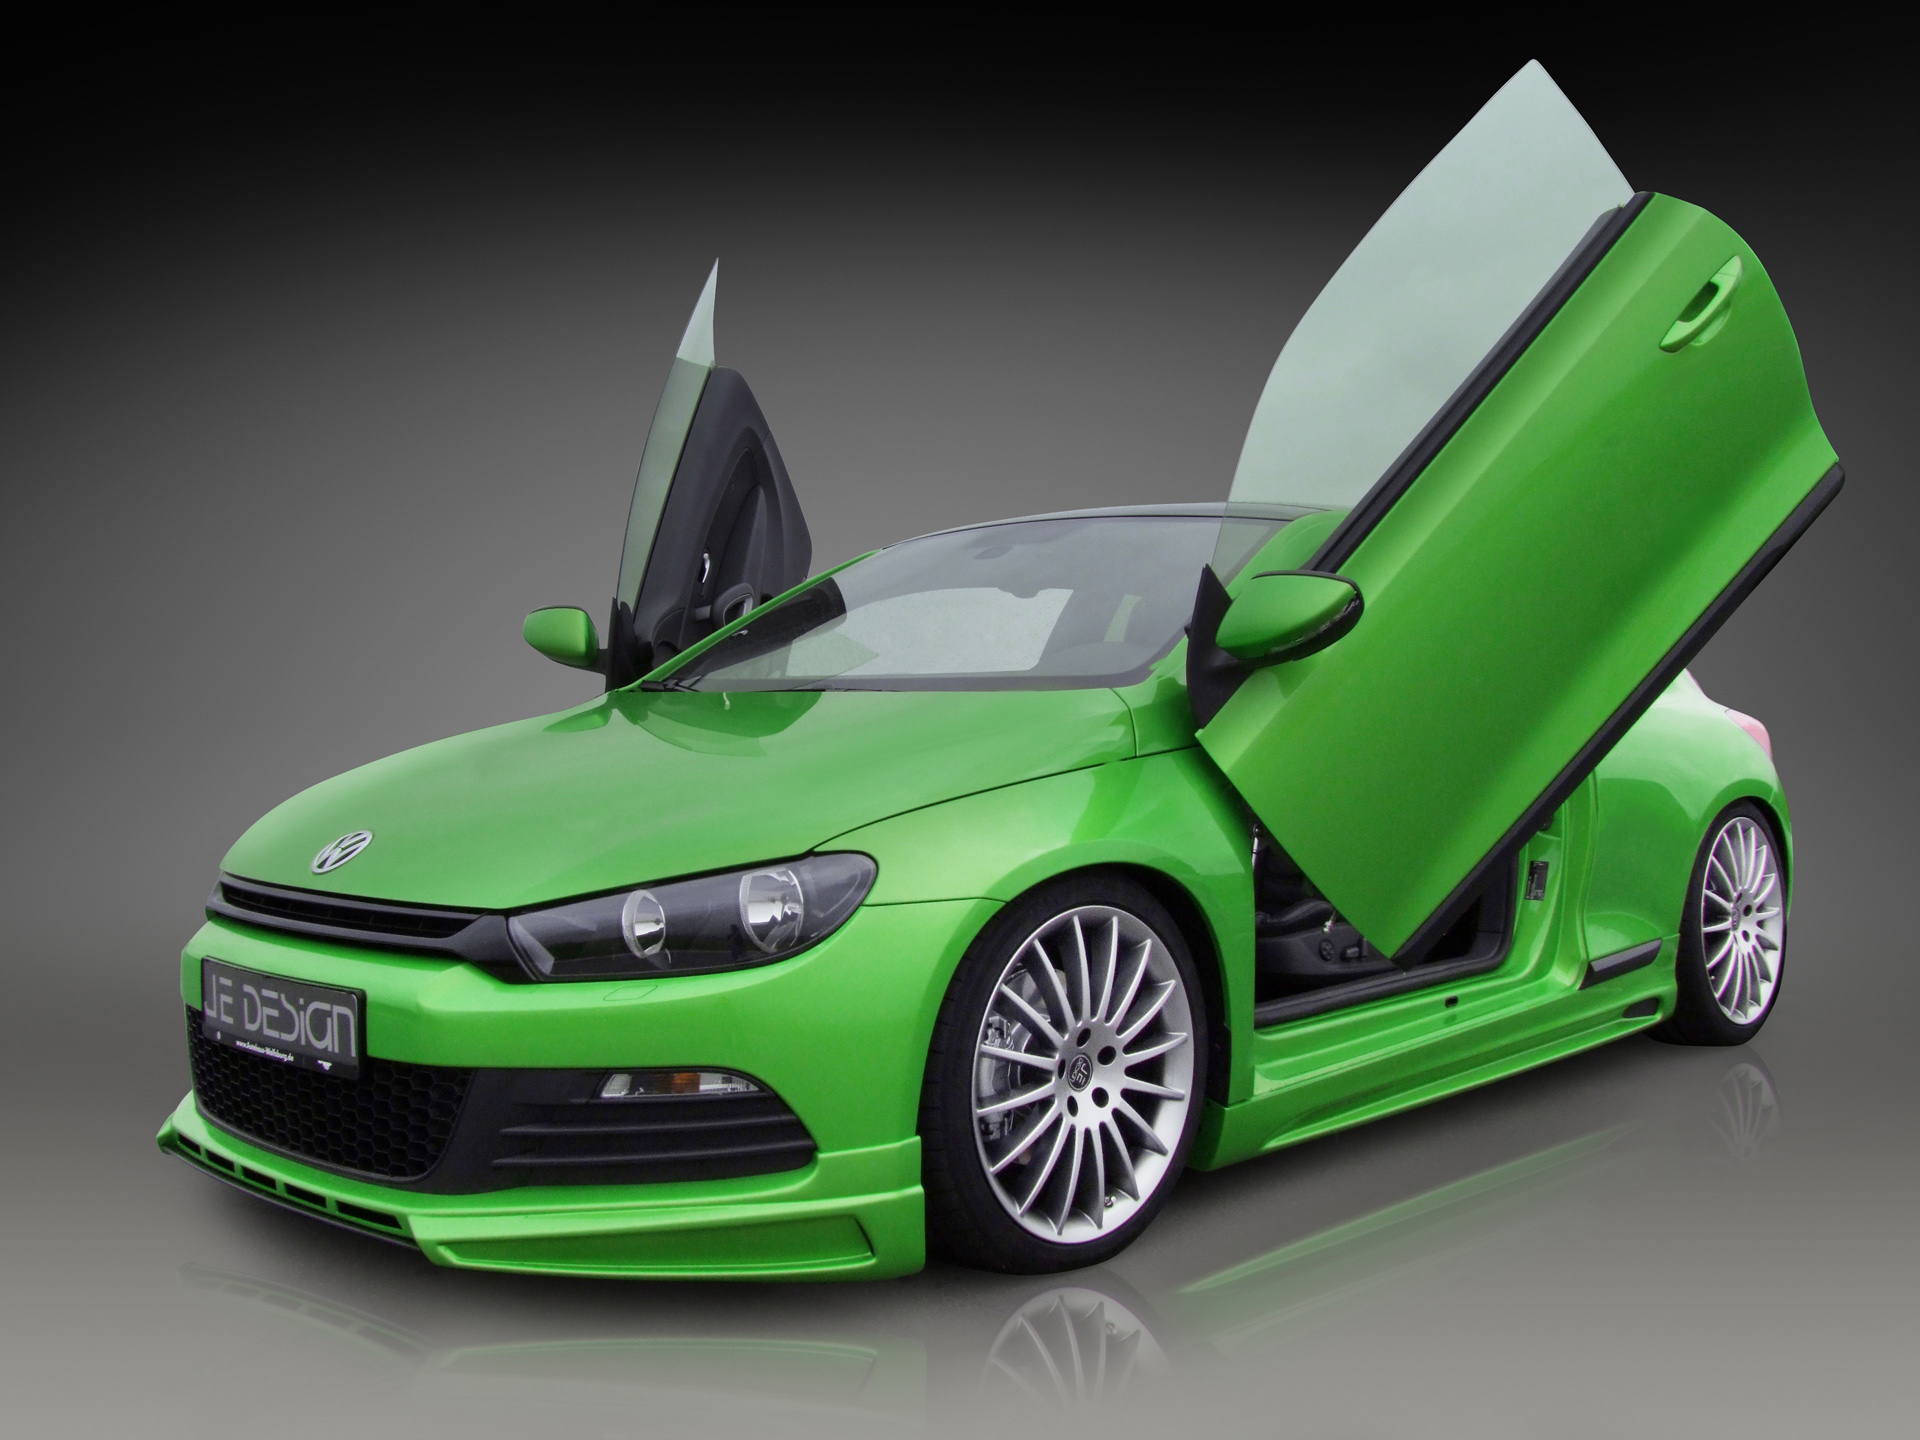 JE Design Volkswagen Scirocco photo 65328